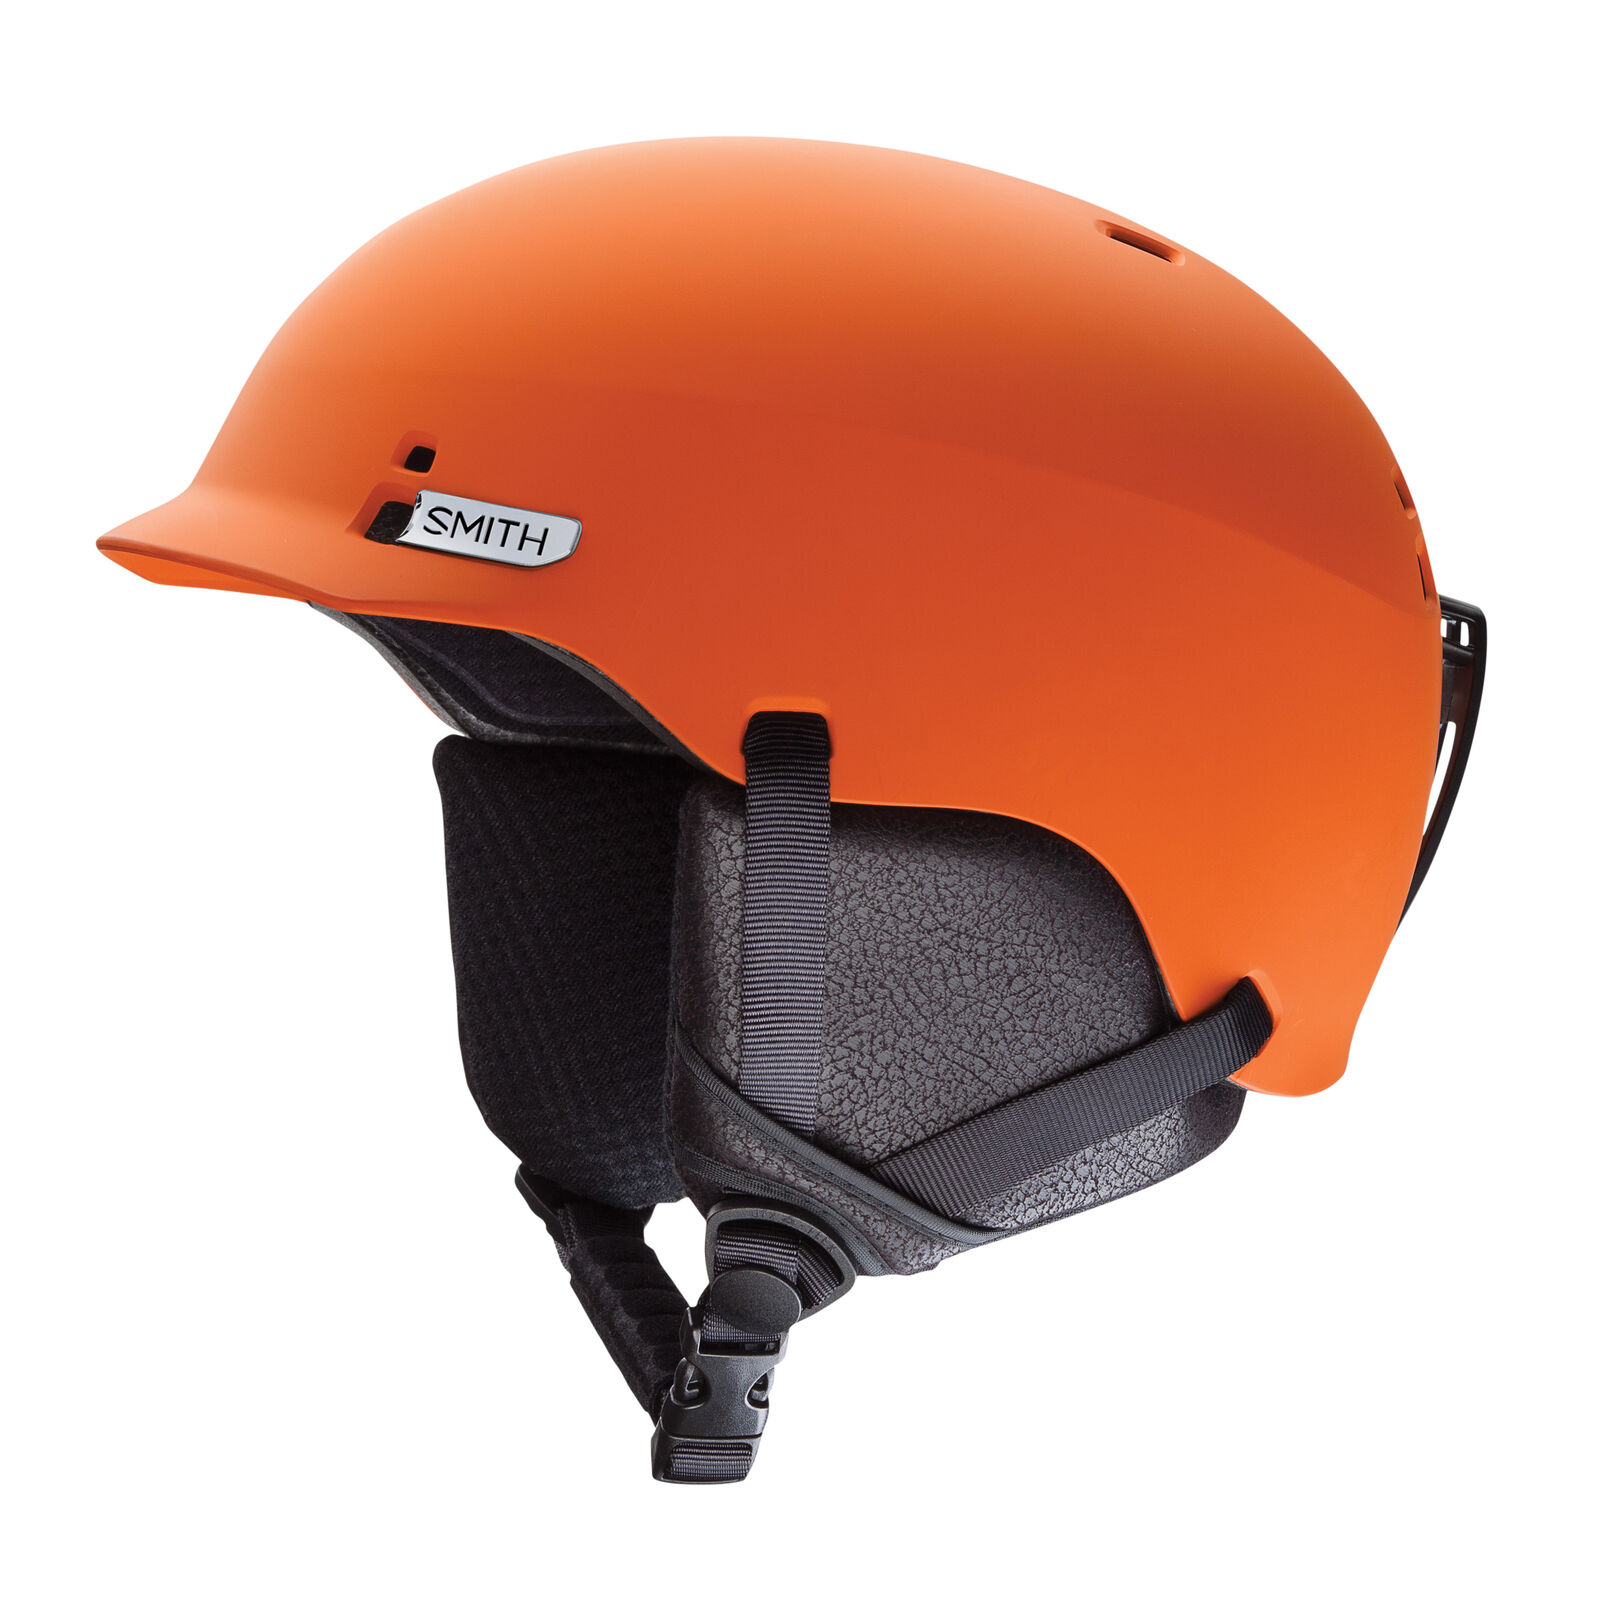 Smith Casco de Snowboard Esquí Gage orange  colors Lisos Ajustable  exclusive